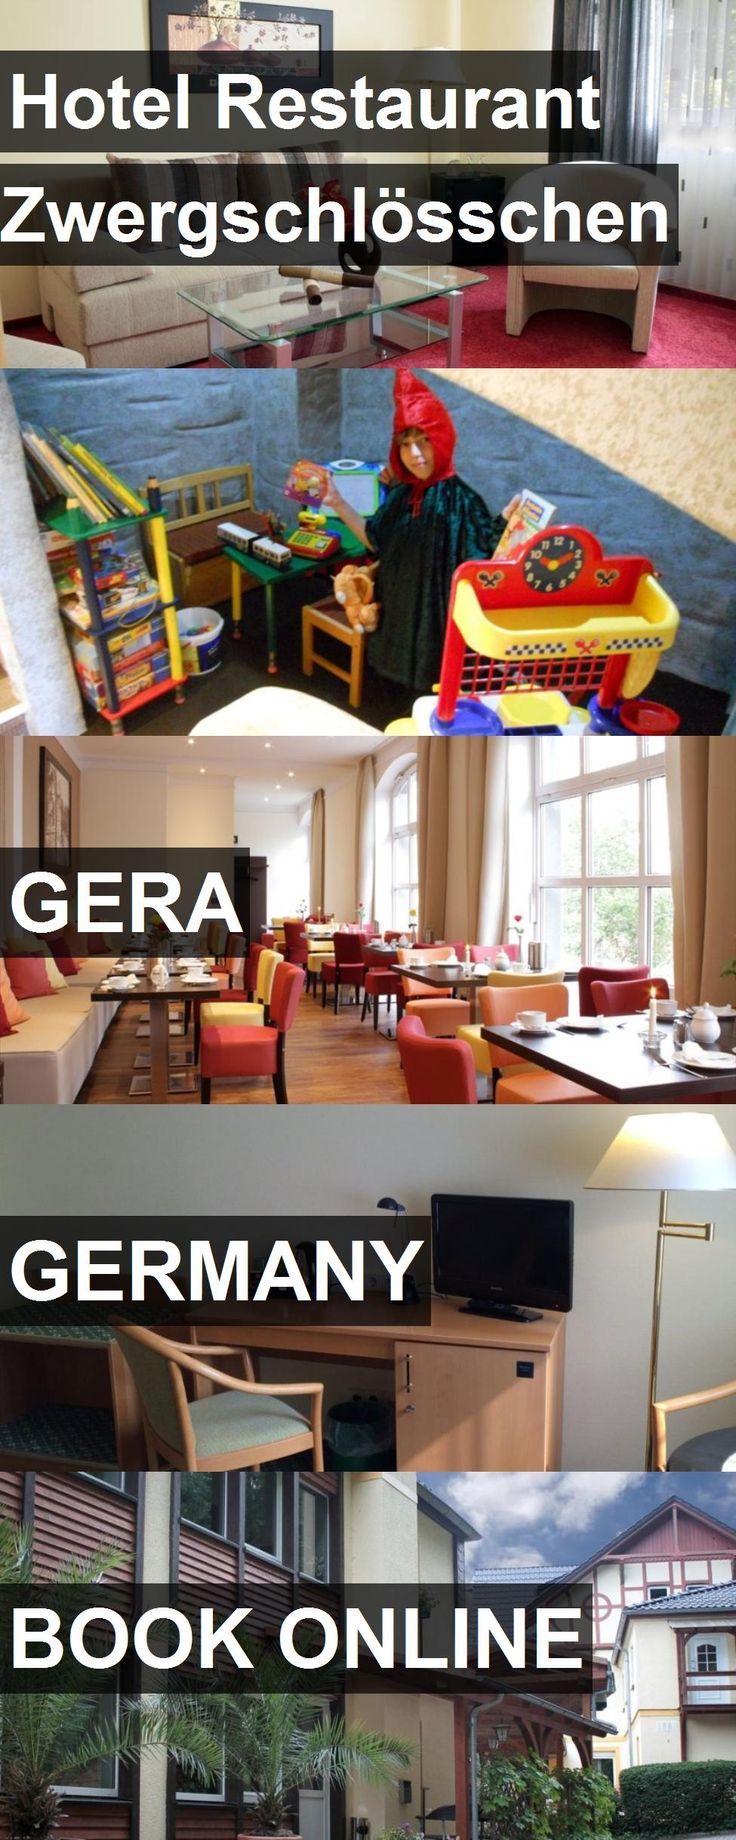 Hotel Hotel Restaurant Zwergschlösschen in Gera, Germany. For more information, photos, reviews and best prices please follow the link. #Germany #Gera #HotelRestaurantZwergschlösschen #hotel #travel #vacation